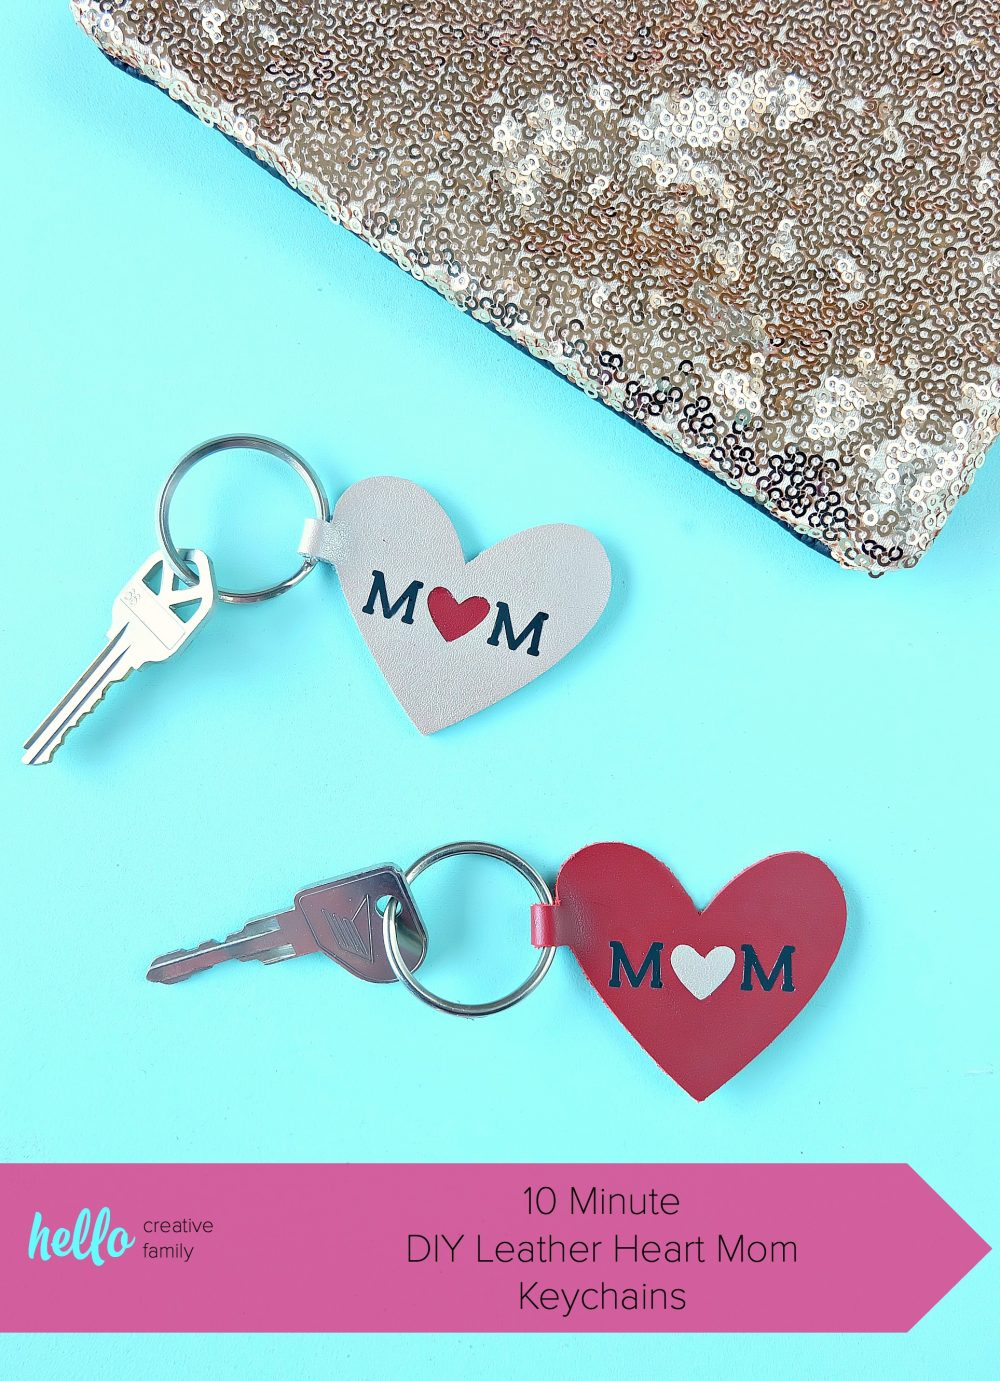 This quick and easy 10 minute Cricut project makes a great handmade gift for mom! Learn how to cut leather using your Cricut and make this DIY Leather Heart Mom Keychain! Includes a cut file as well as step by step photos including how to apply htv to leather! #MothersDay #CricutProject #handmadegift #Mom #Cricut